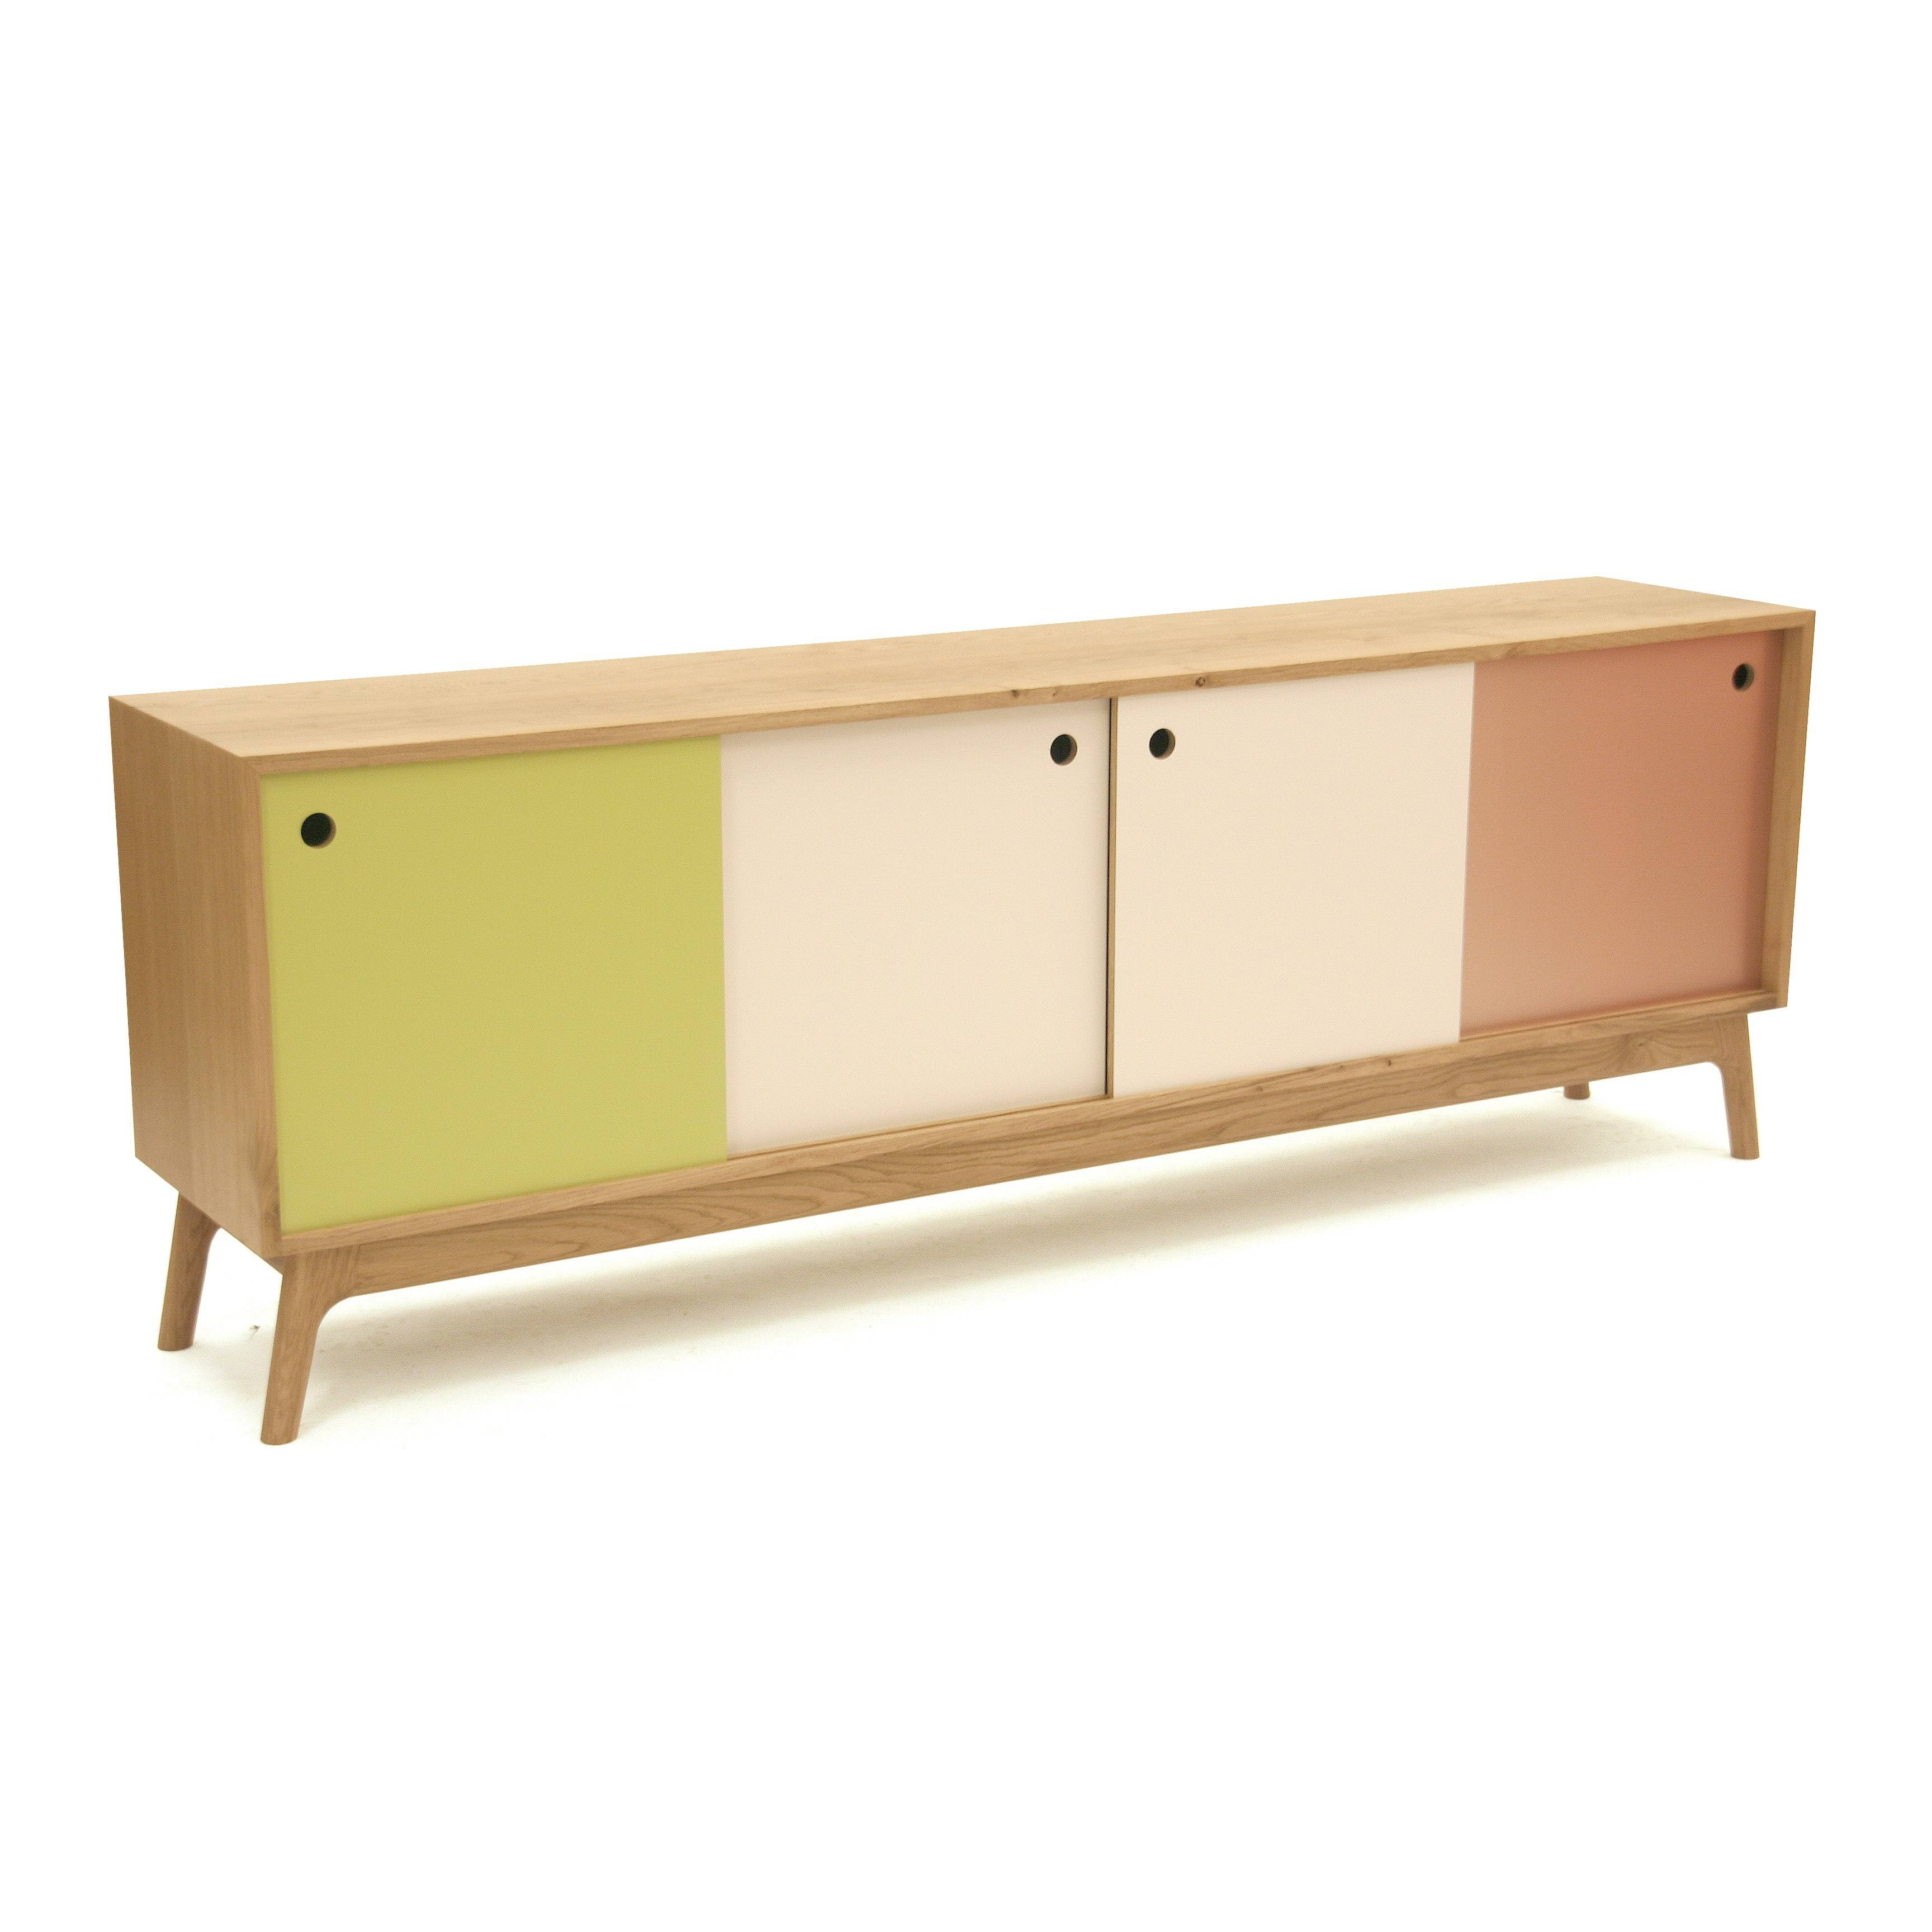 Design 20:20 Sideboard Triple Intended For Most Recently Released Bespoke Sideboards (#6 of 15)